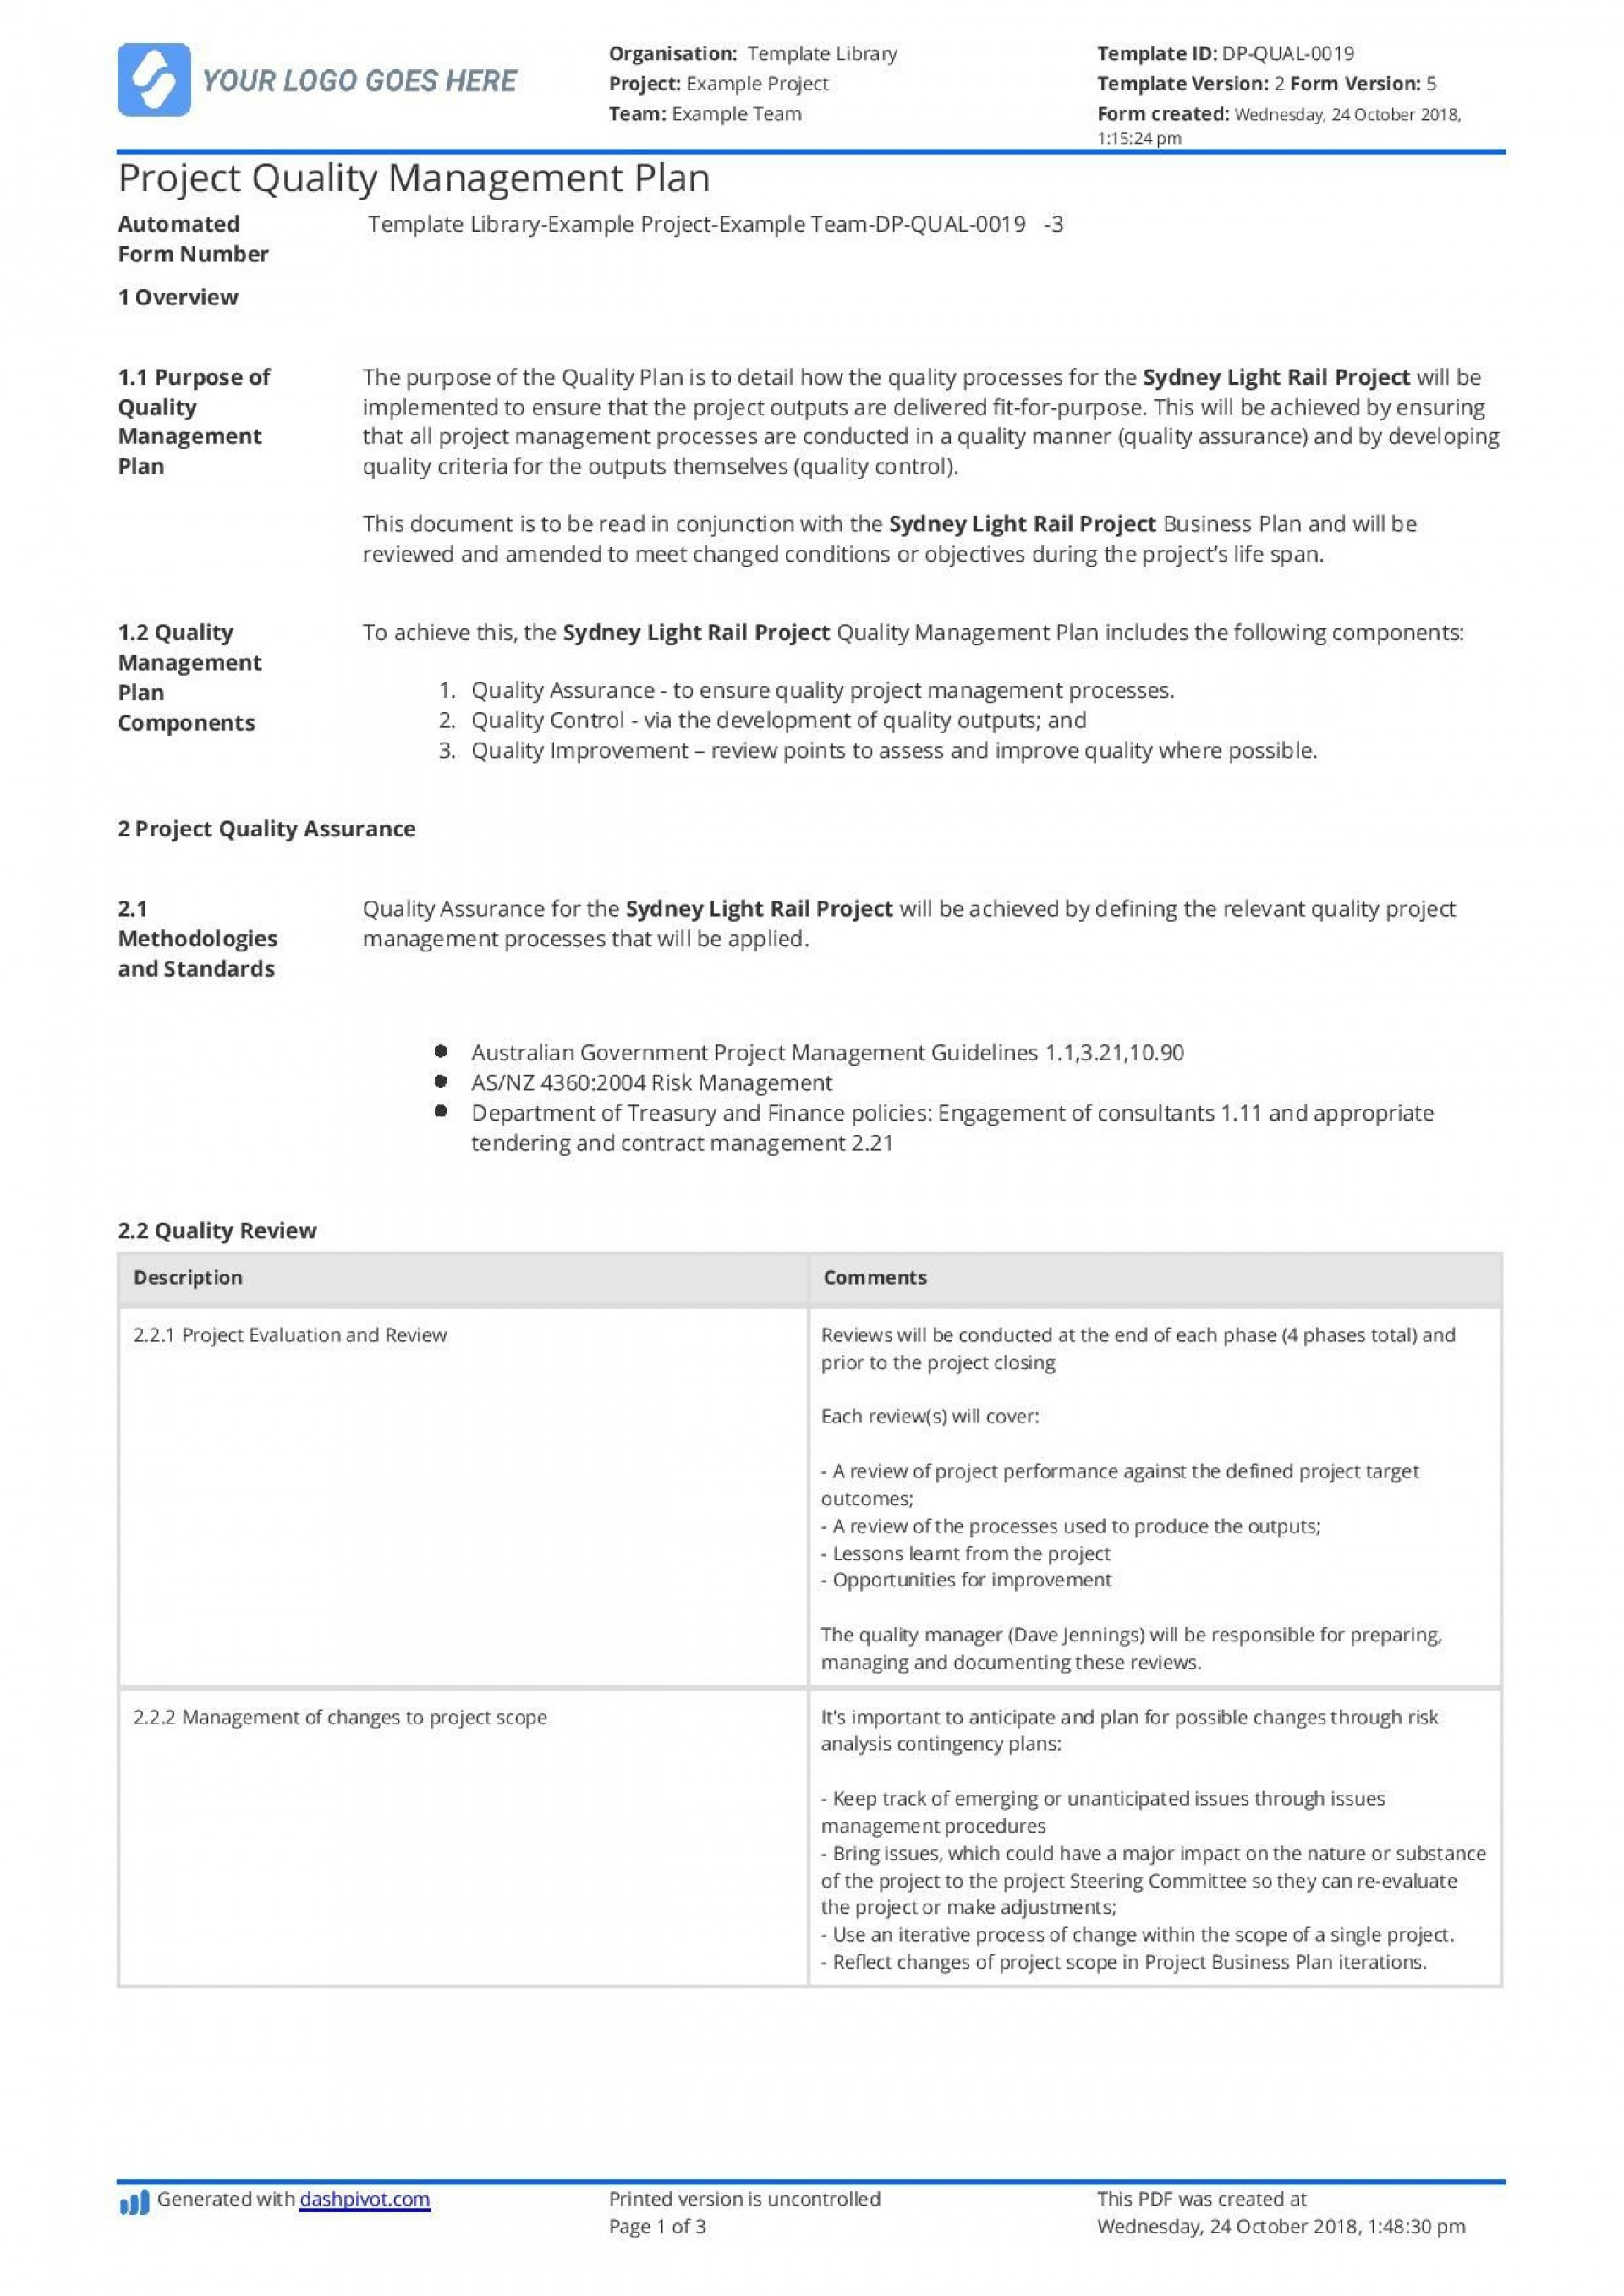 002 Imposing Project Quality Management Plan Template Pdf Concept  Sample1920